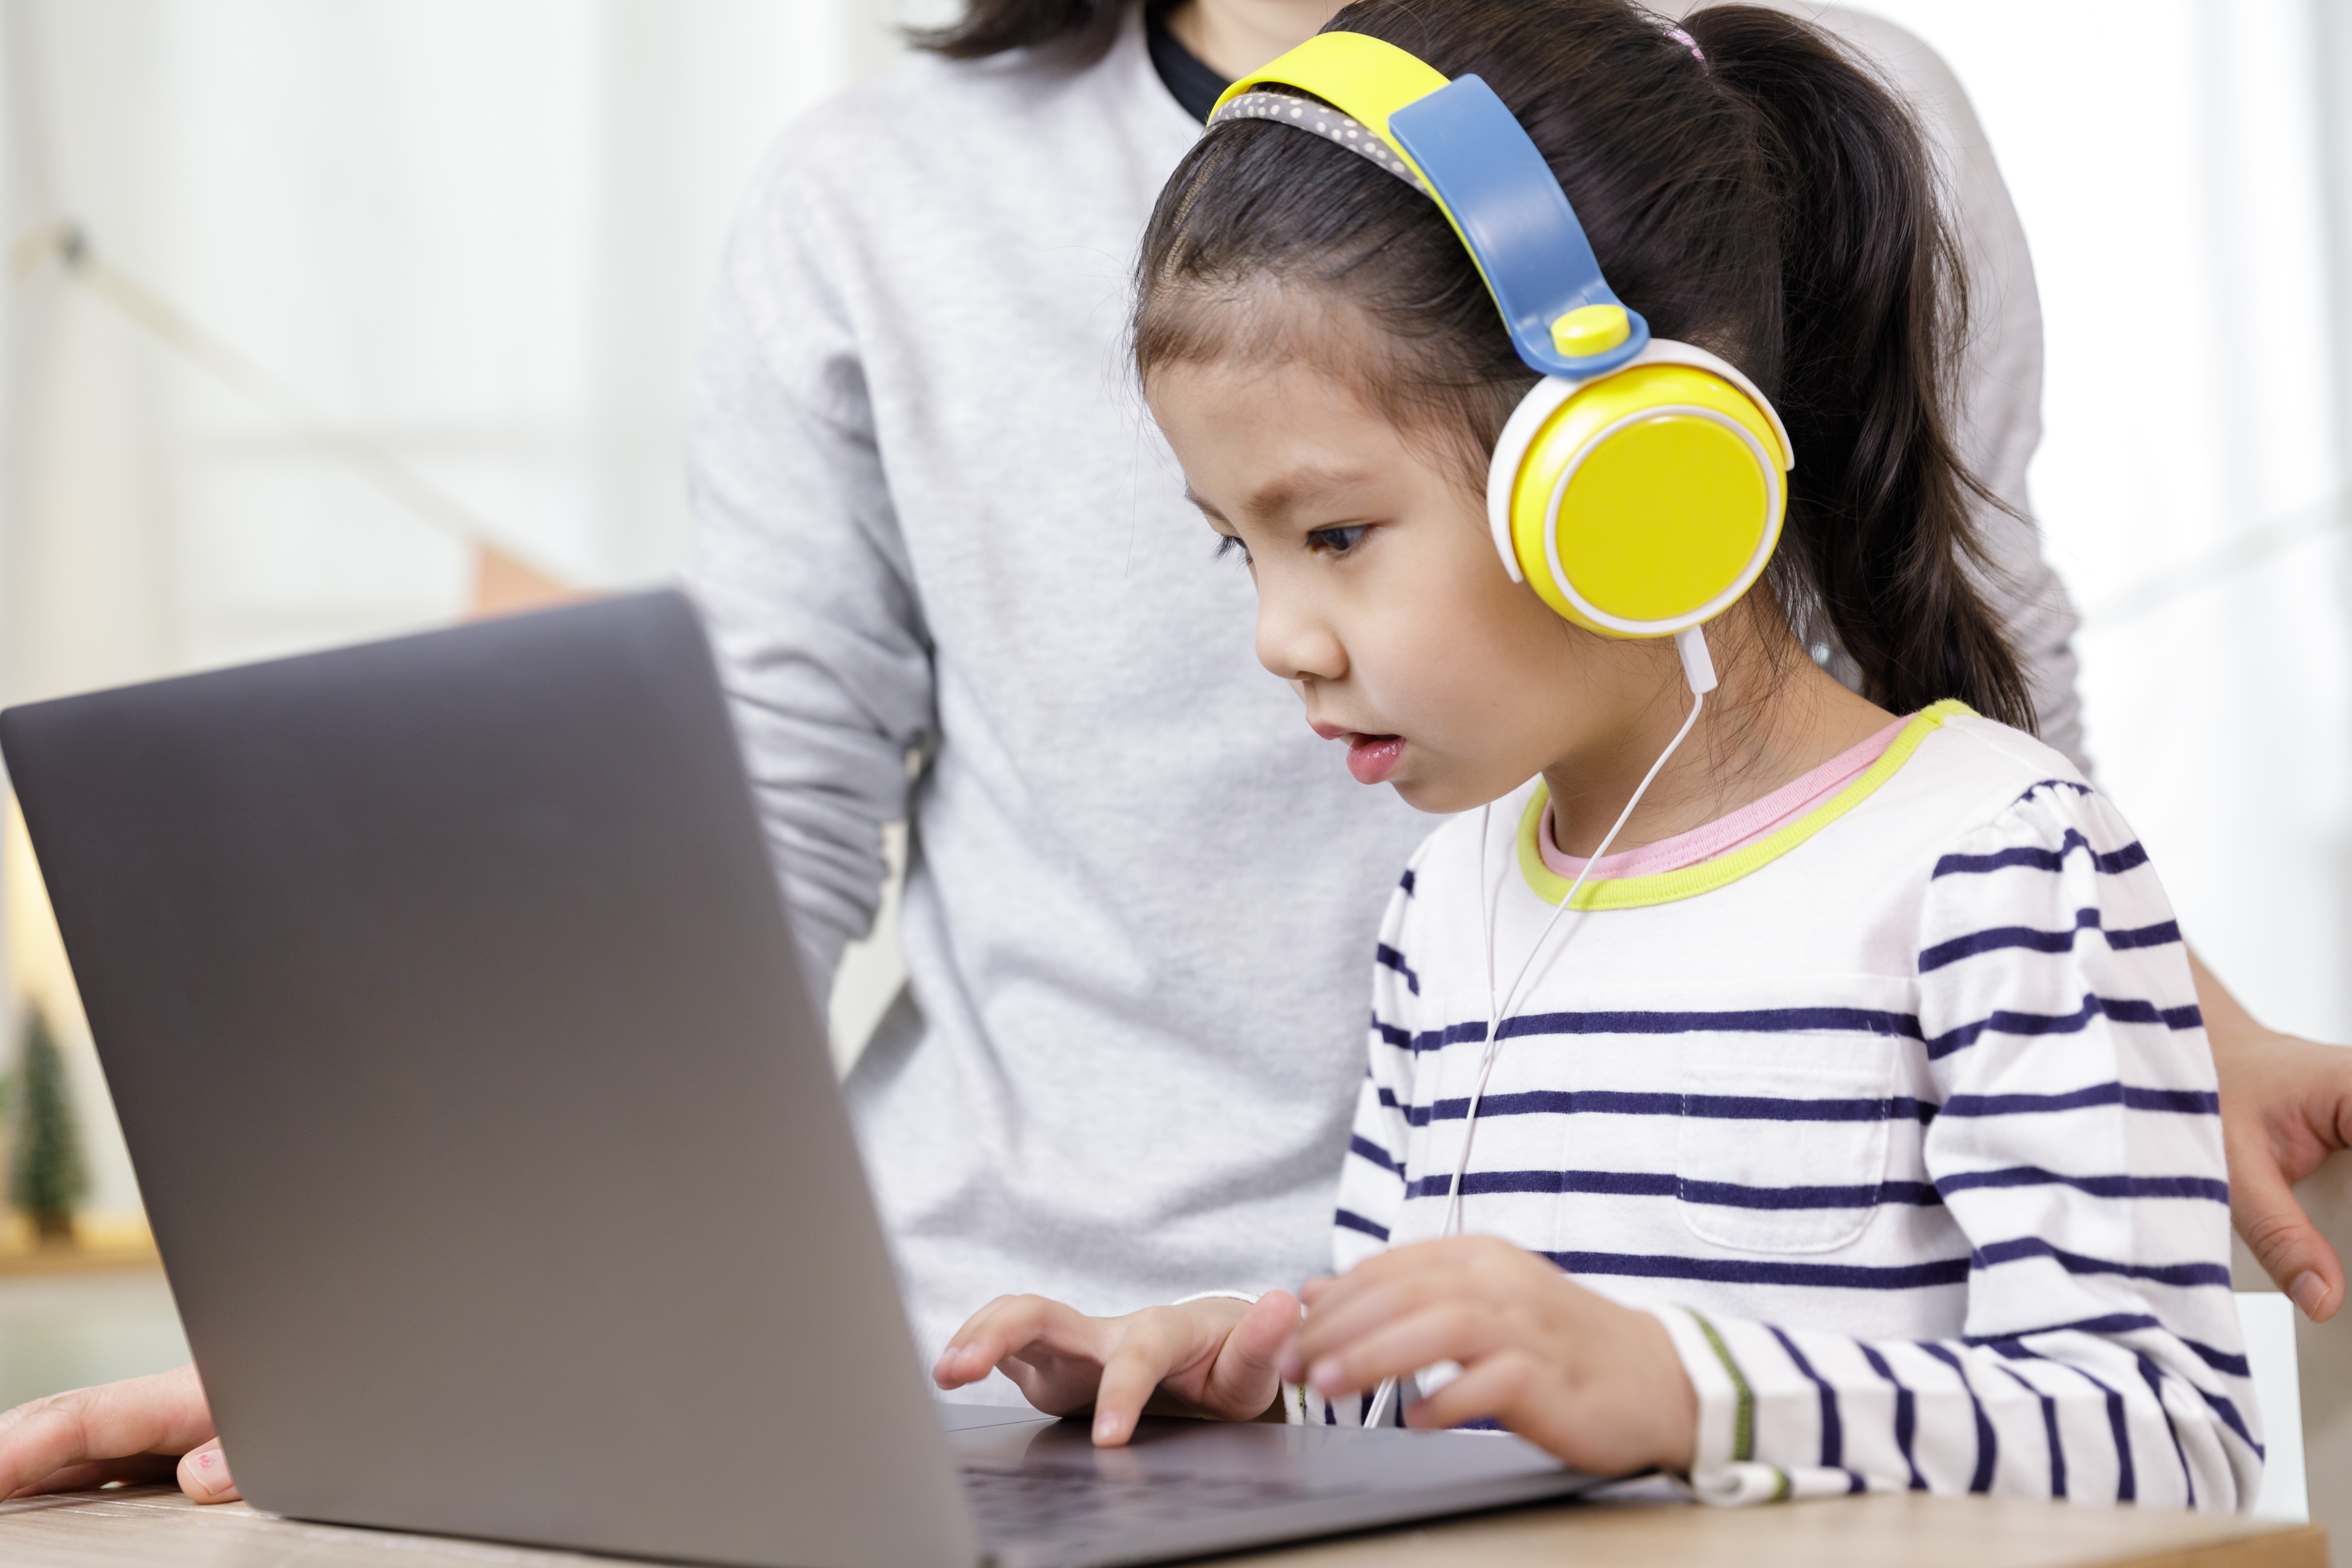 a small child completes an activity on a laptop computer. She wears large yellow headphones.